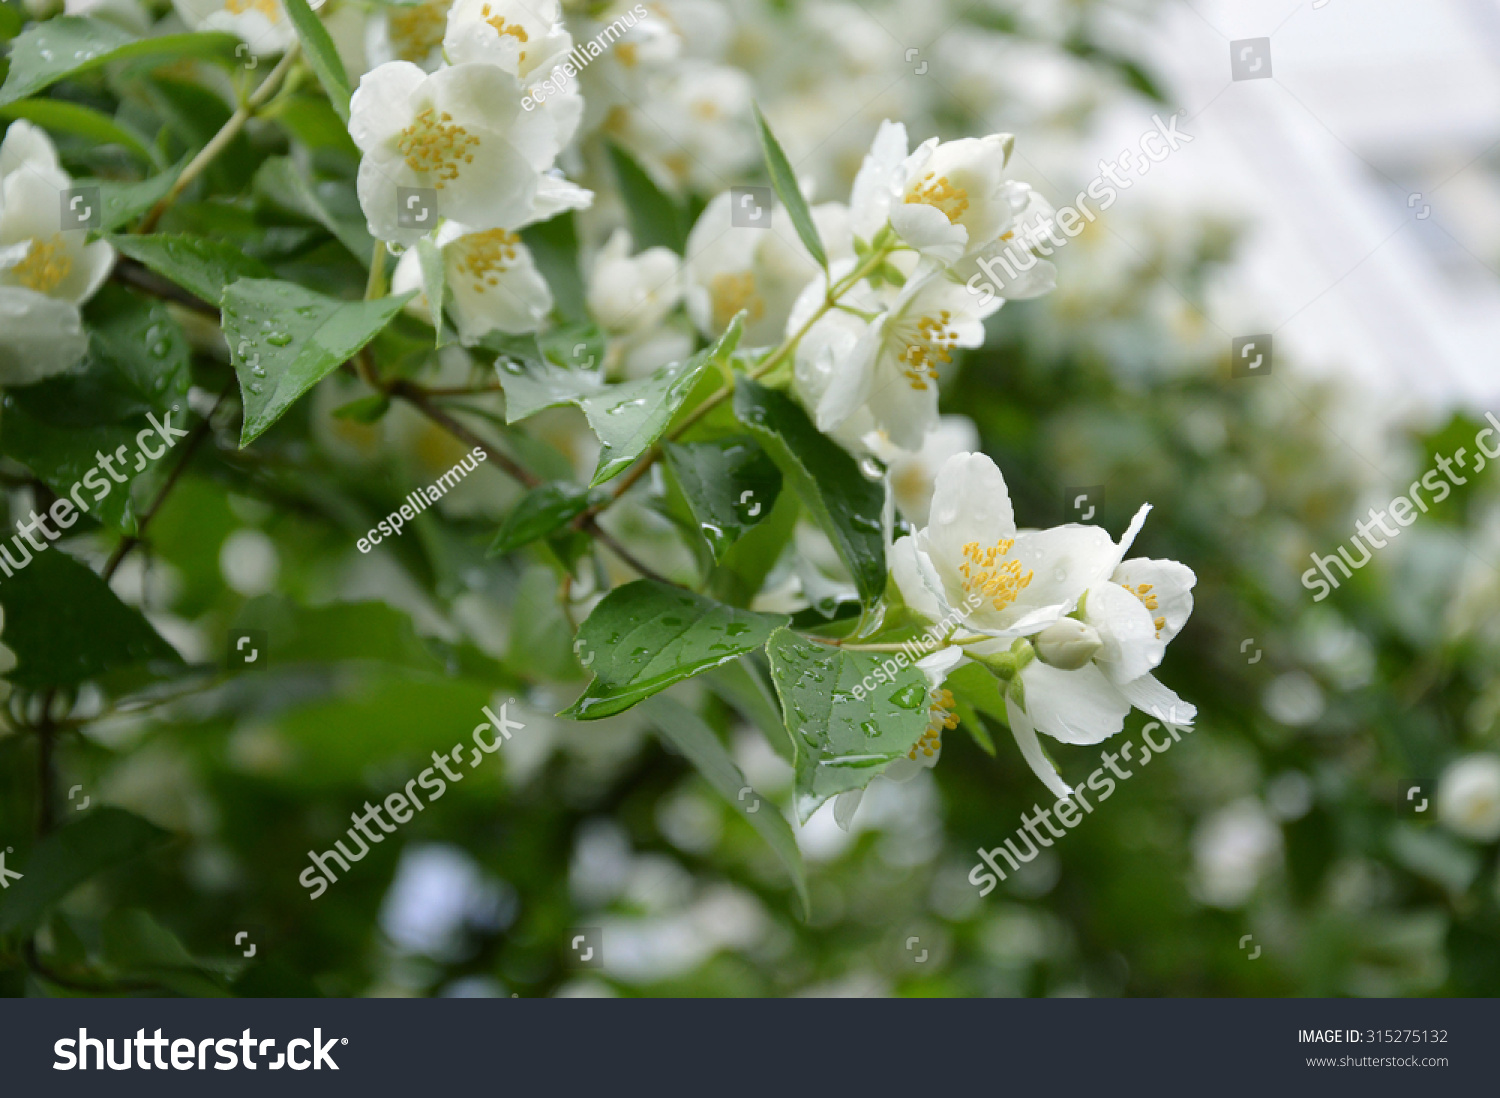 Blooming Jasmine White Flowers On Bush Stock Photo Edit Now